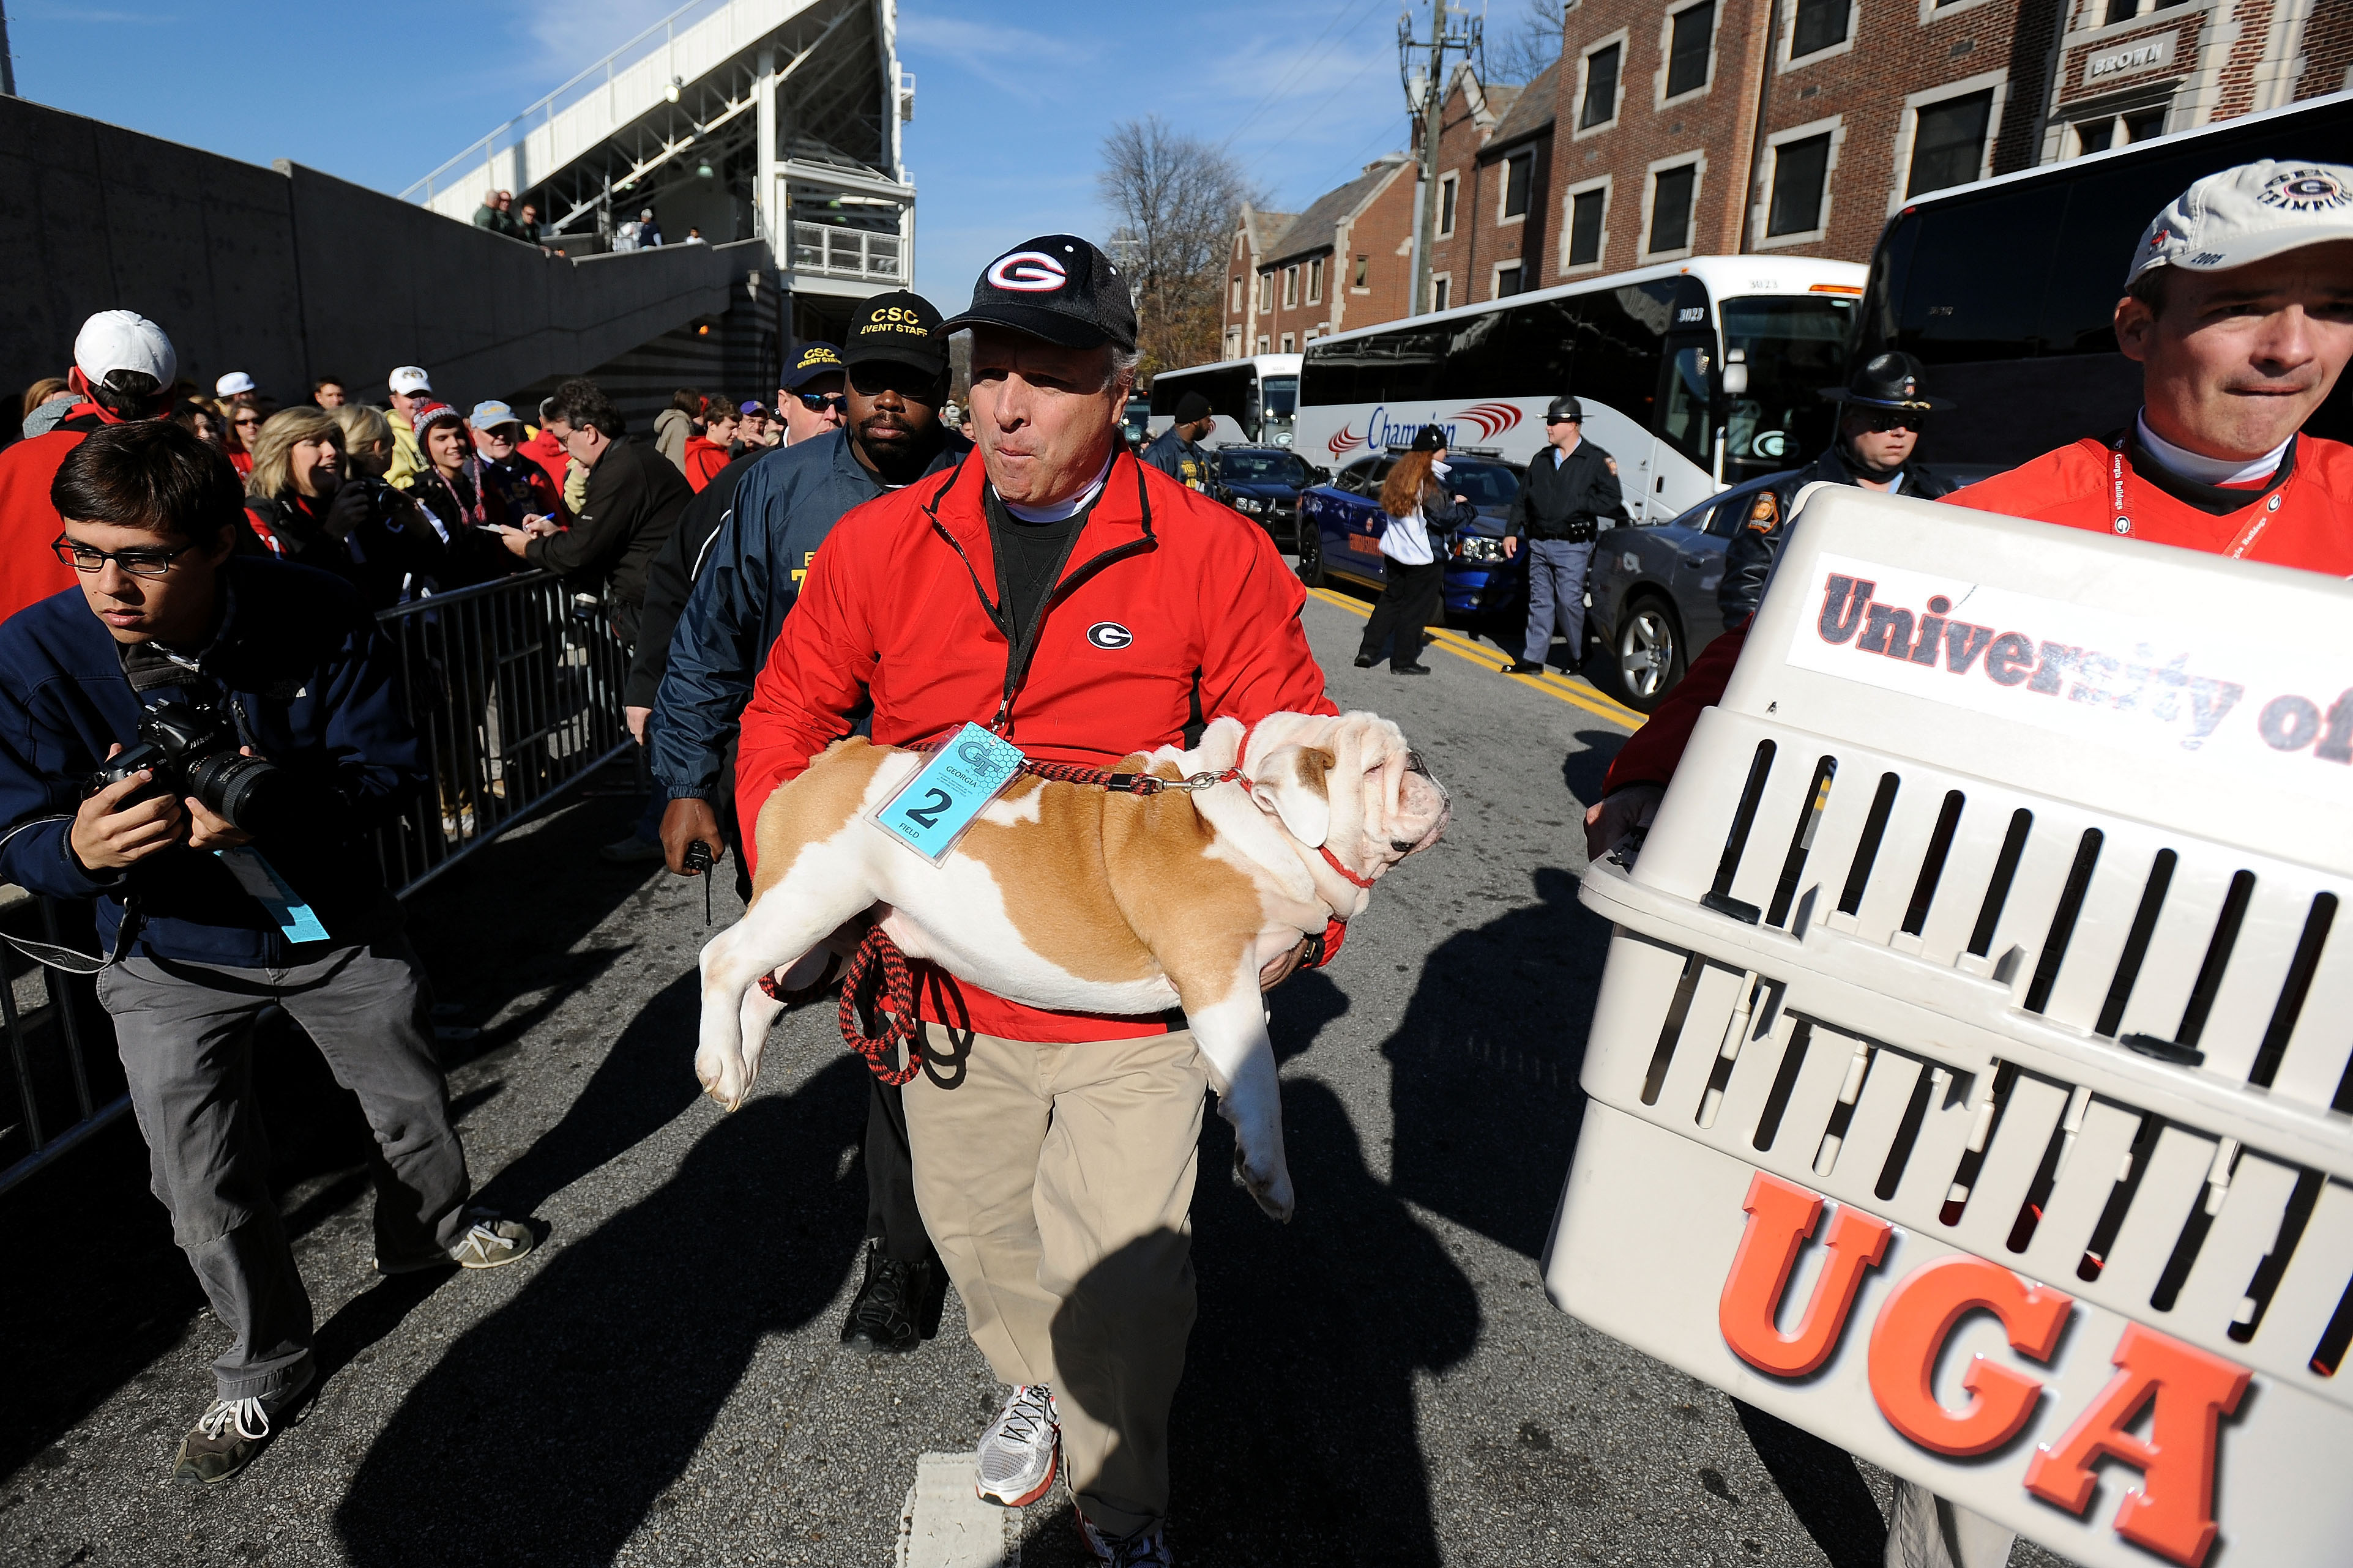 FILE - In this Nov. 30, 2014 file photo, Georgia's mascot Uga IX is carried into Bobby Dodd Stadium by handler Charles Seiler during the traditional Dawg Walk before an NCAA football game in Atlanta.  Uga X comes from the same bloodline as the nine white